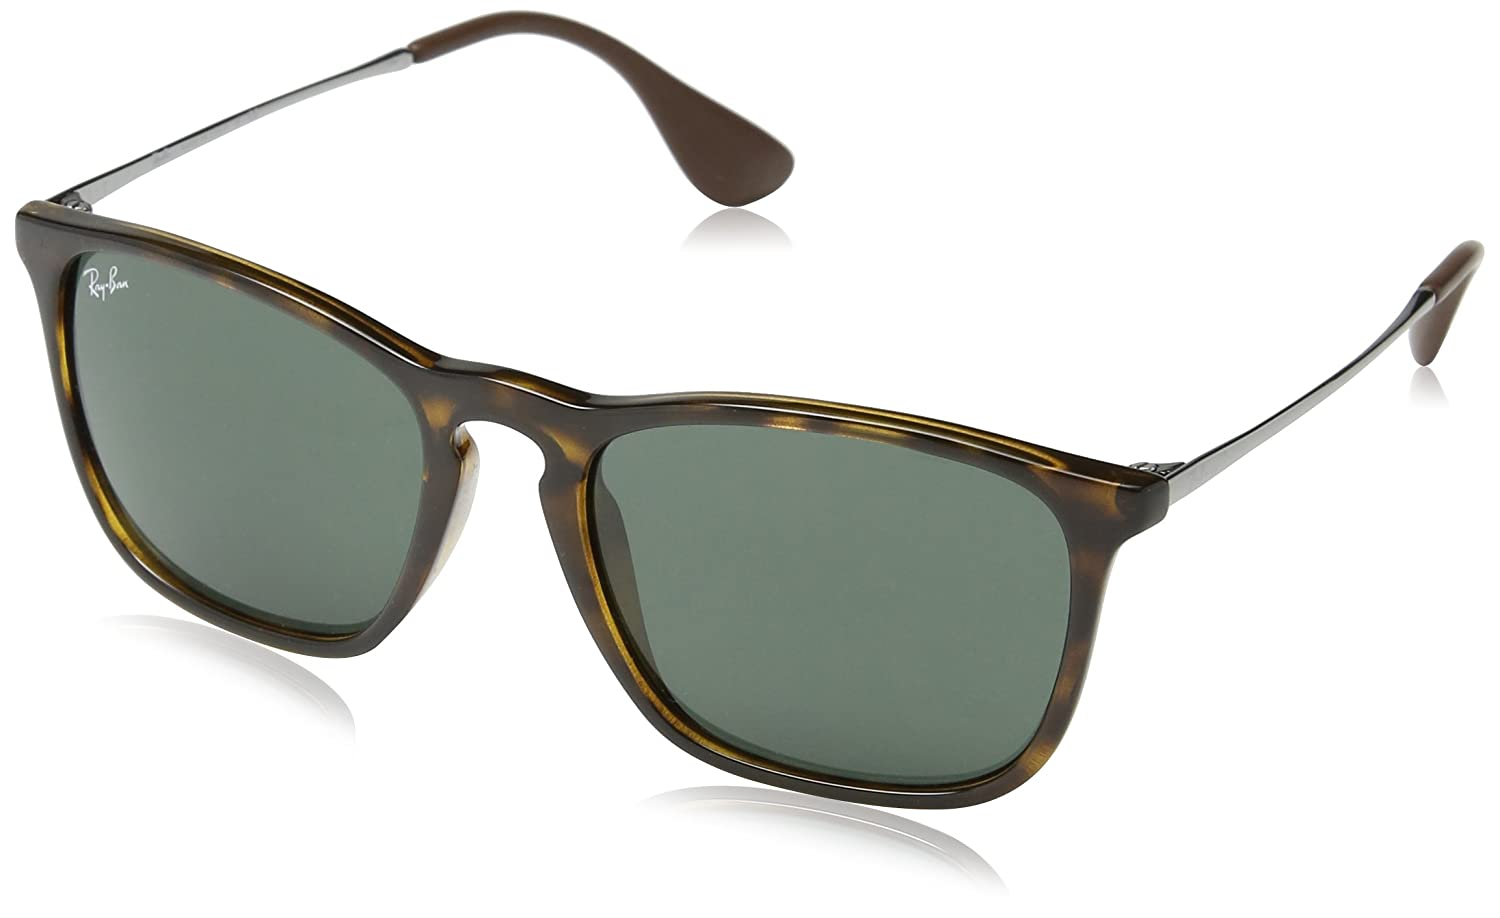 1f56297a986 Amazon.com  Ray-Ban RB4187 Tortoise Chris Sunglasses with Green Classic  Lens